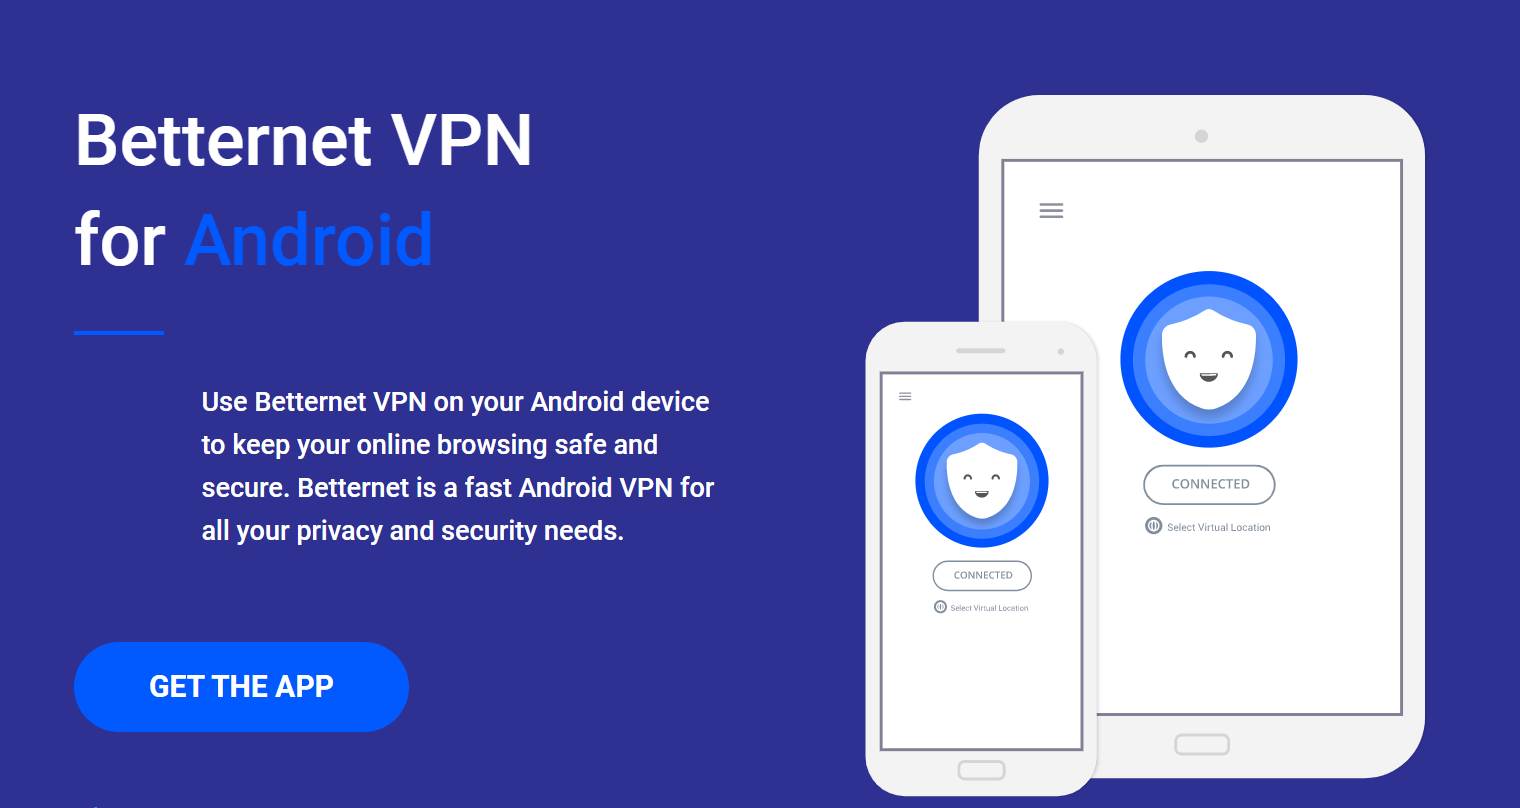 Betternet free VPN for Android devices